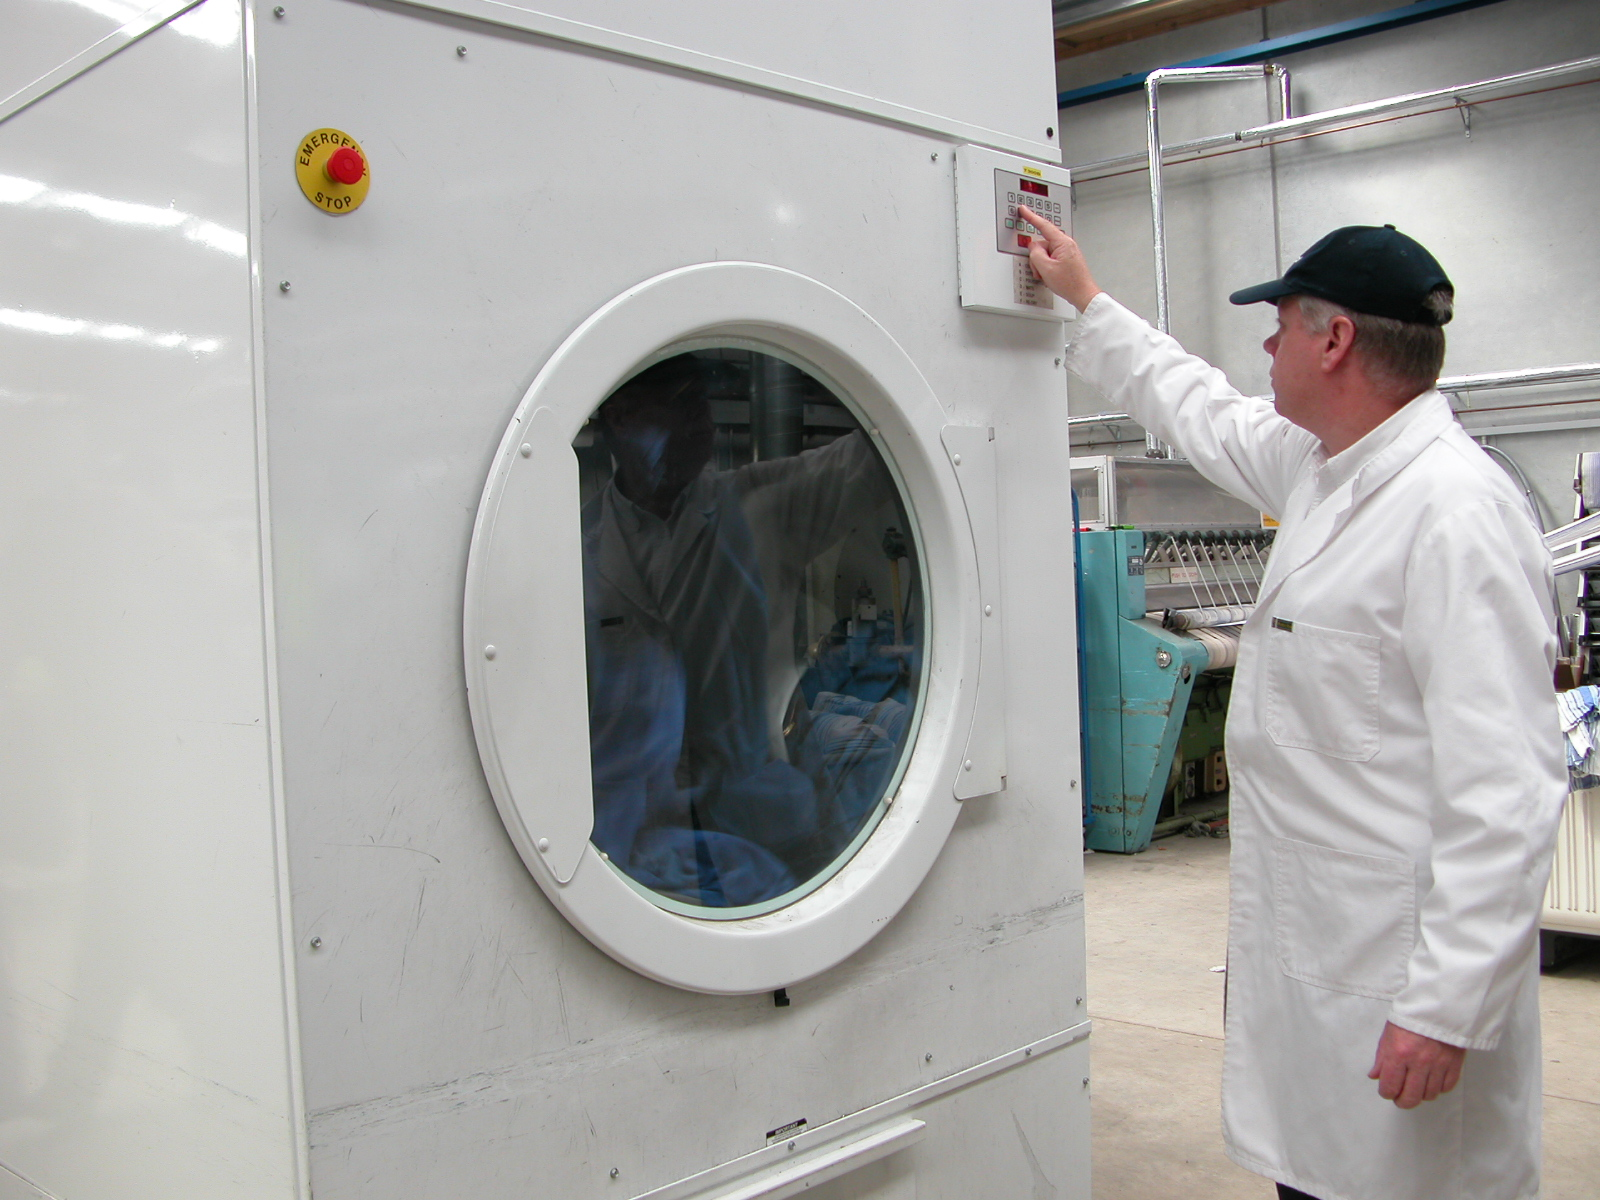 man operating big Laundry machine